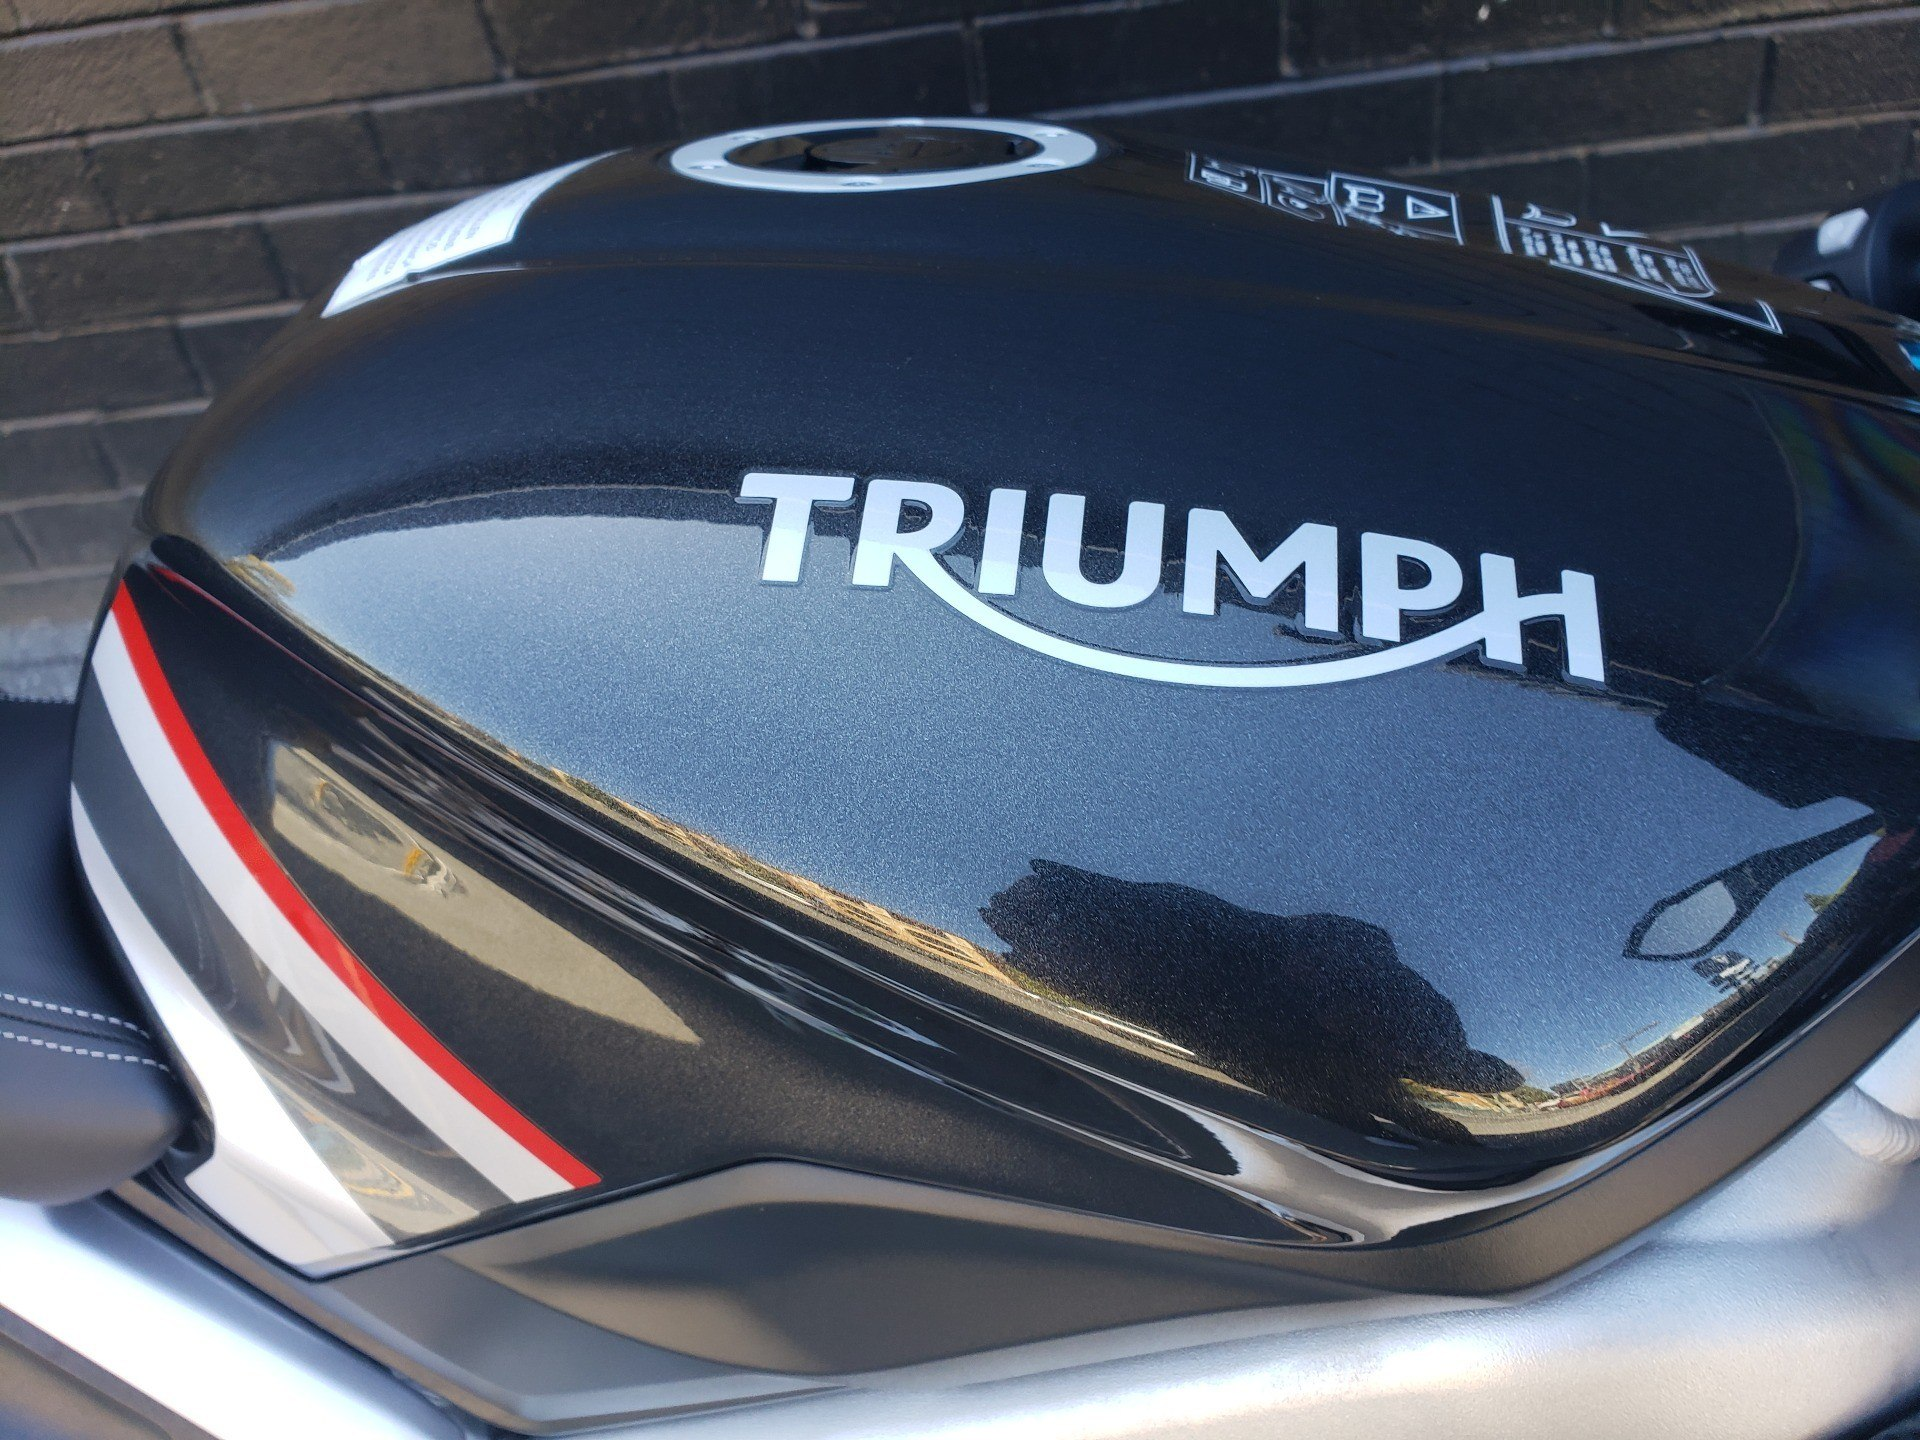 2020 Triumph Daytona Moto 2 Limited Edition in San Jose, California - Photo 7